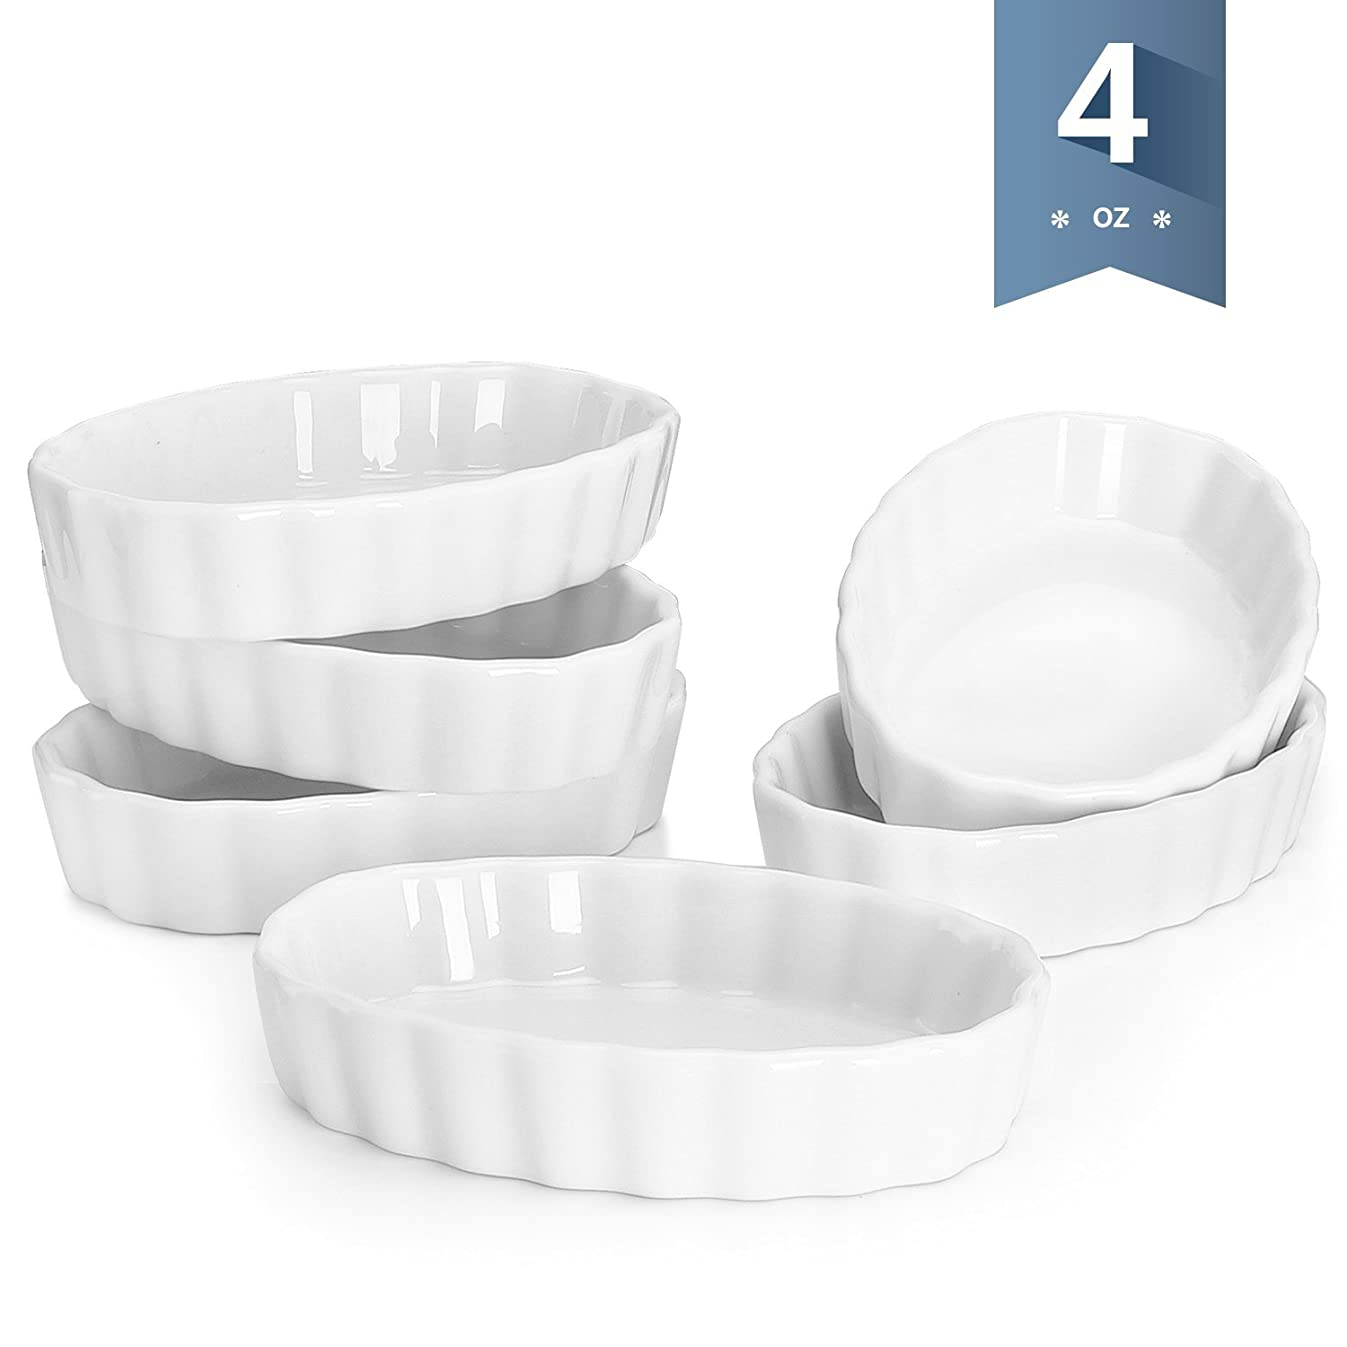 Sweese 5101 Porcelain Ramekins Oval Shape - 4 Ounce for Creme Brulee - Set of 6, 4.7 x 3.2 x 1 Inch, White